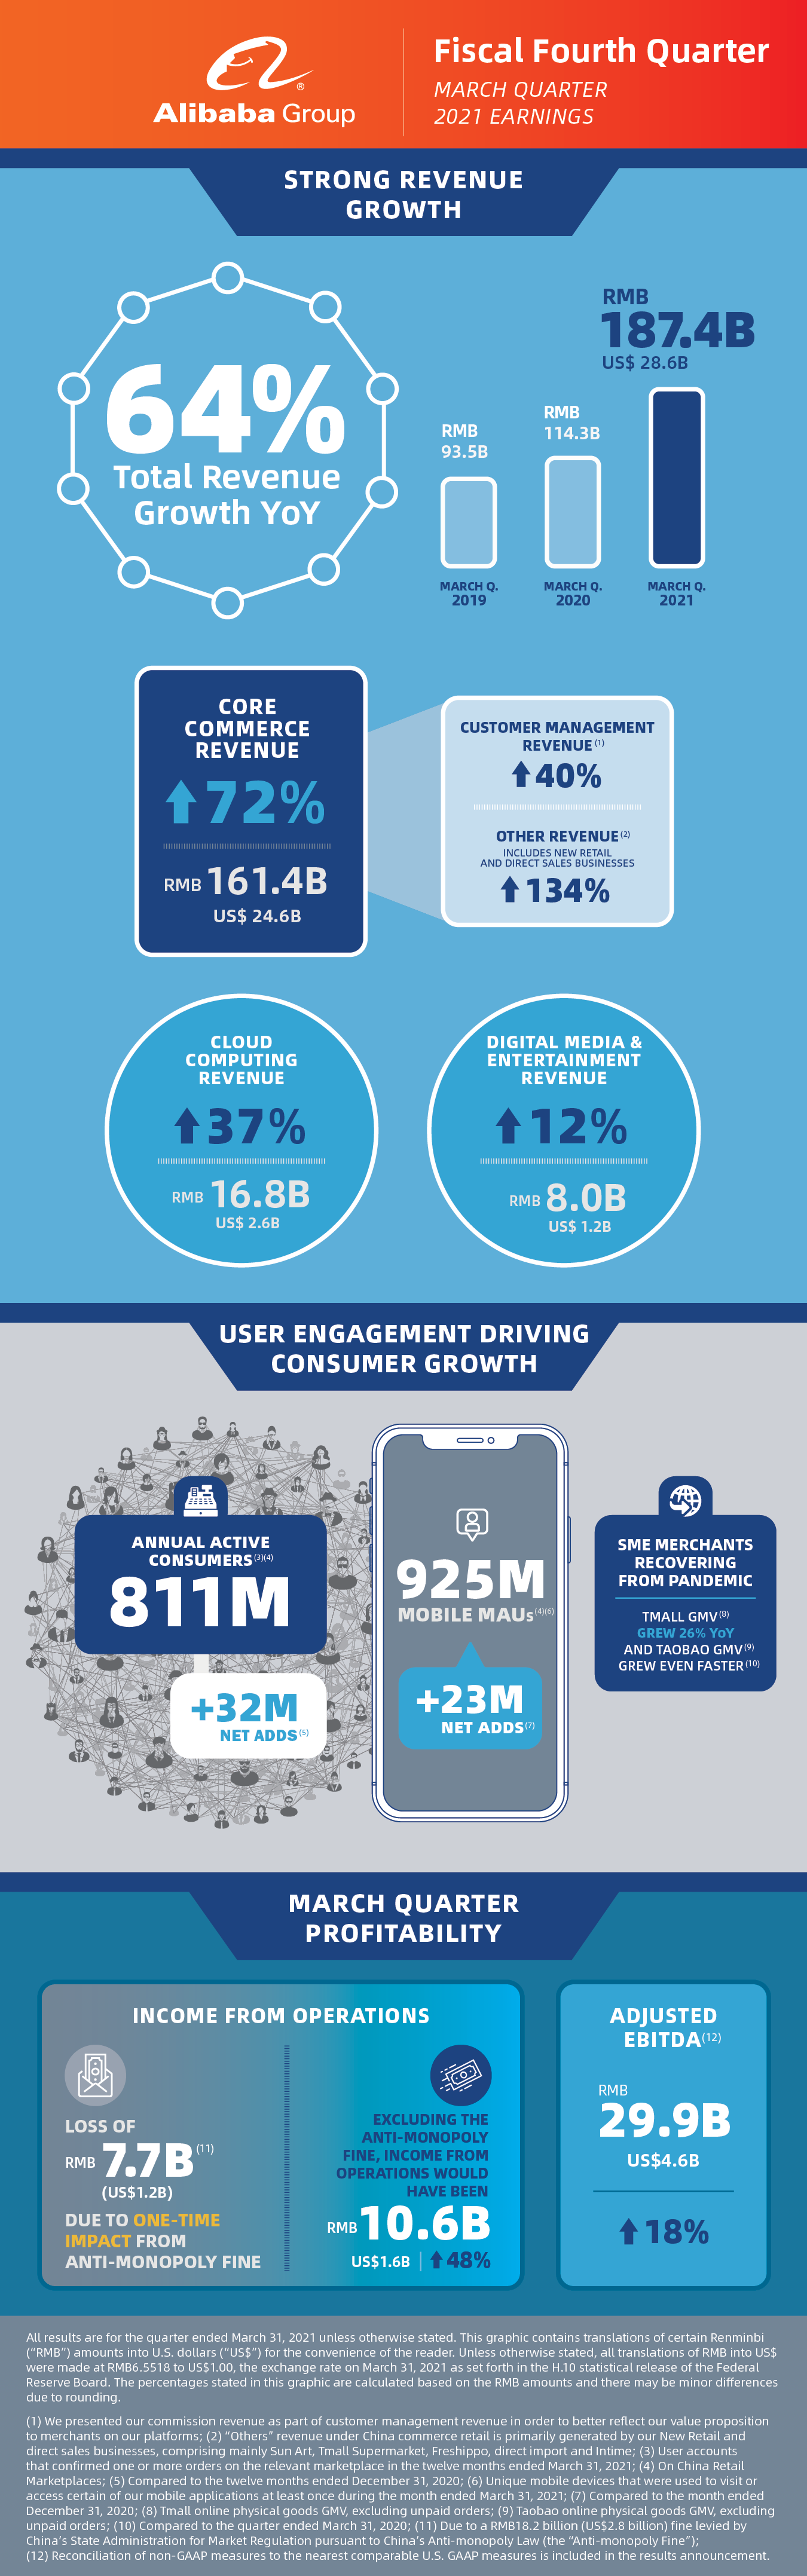 Alibaba March Quarter 2021 Infographic 002